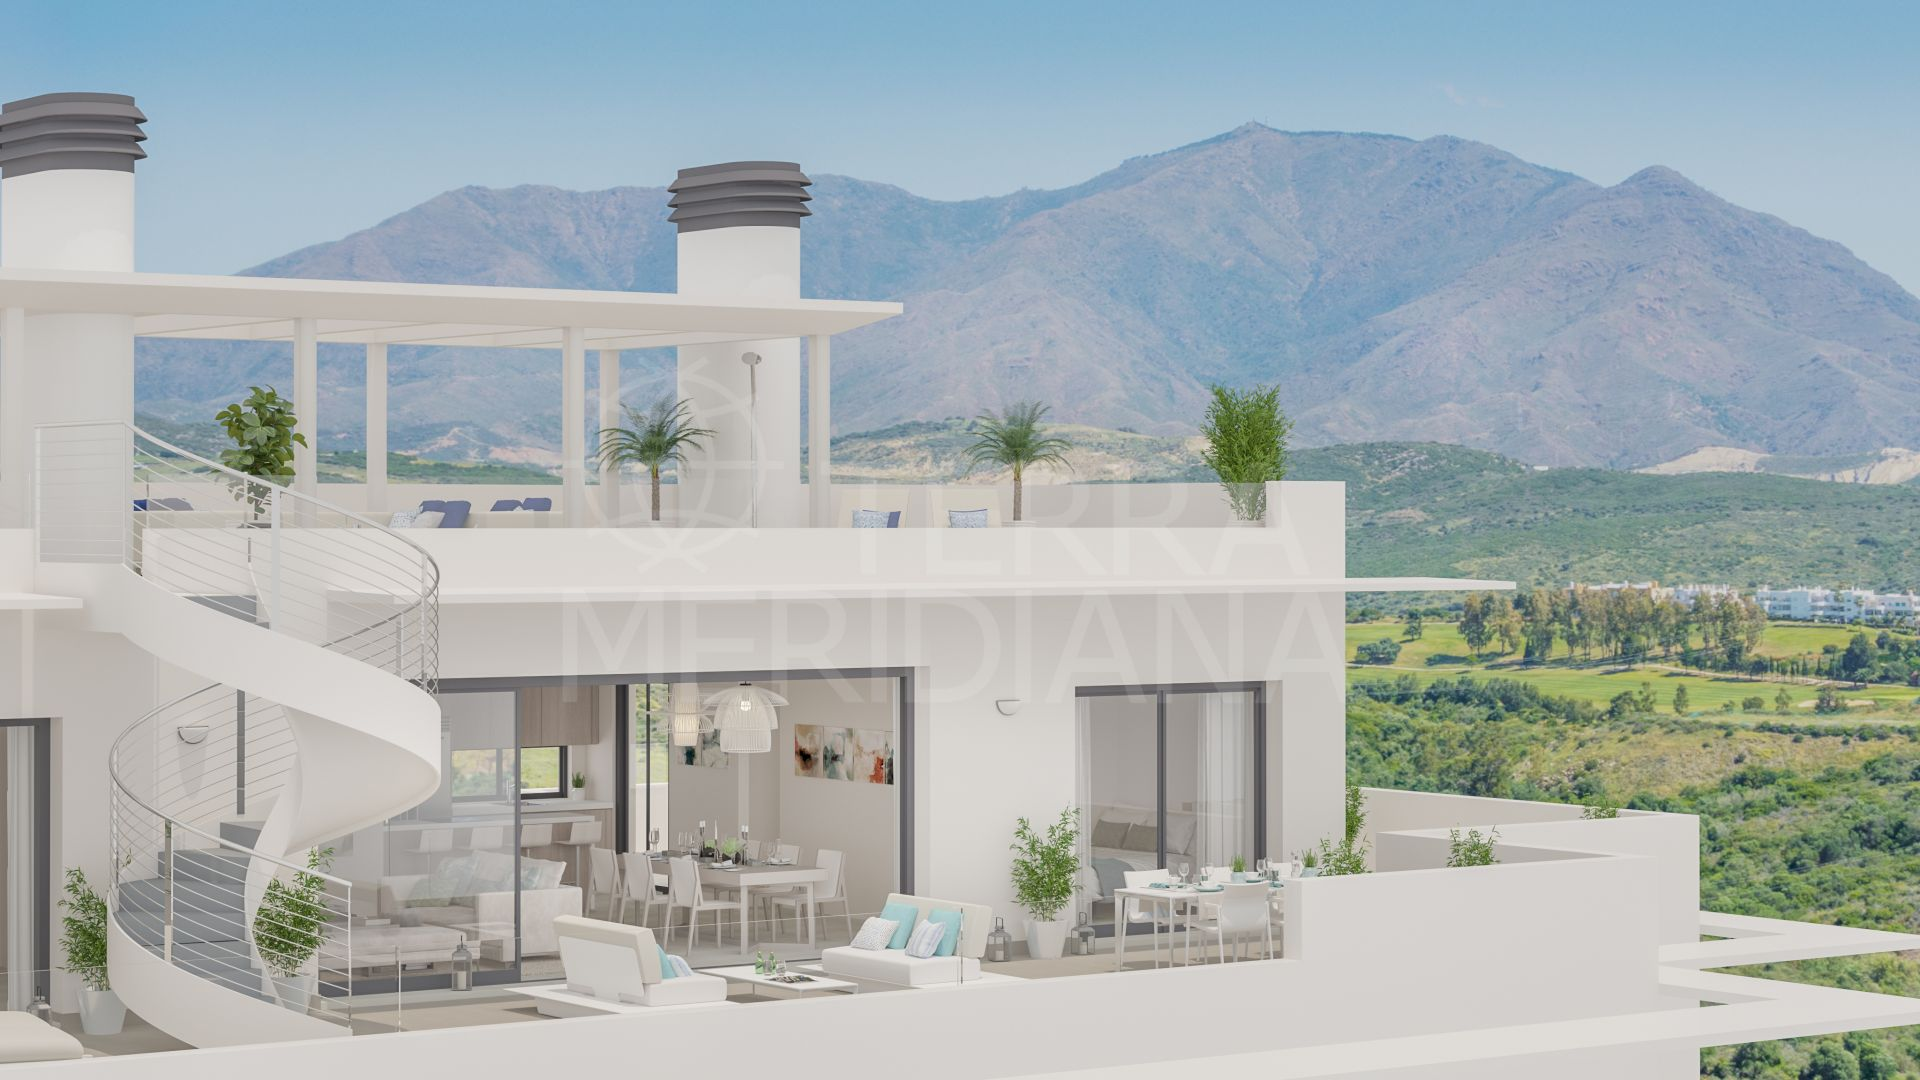 Terrazas de Cortesin Seaviews, Casares - New real estate promotion of apartments, penthouses and townhouses located on a hill within Finca Cortesin